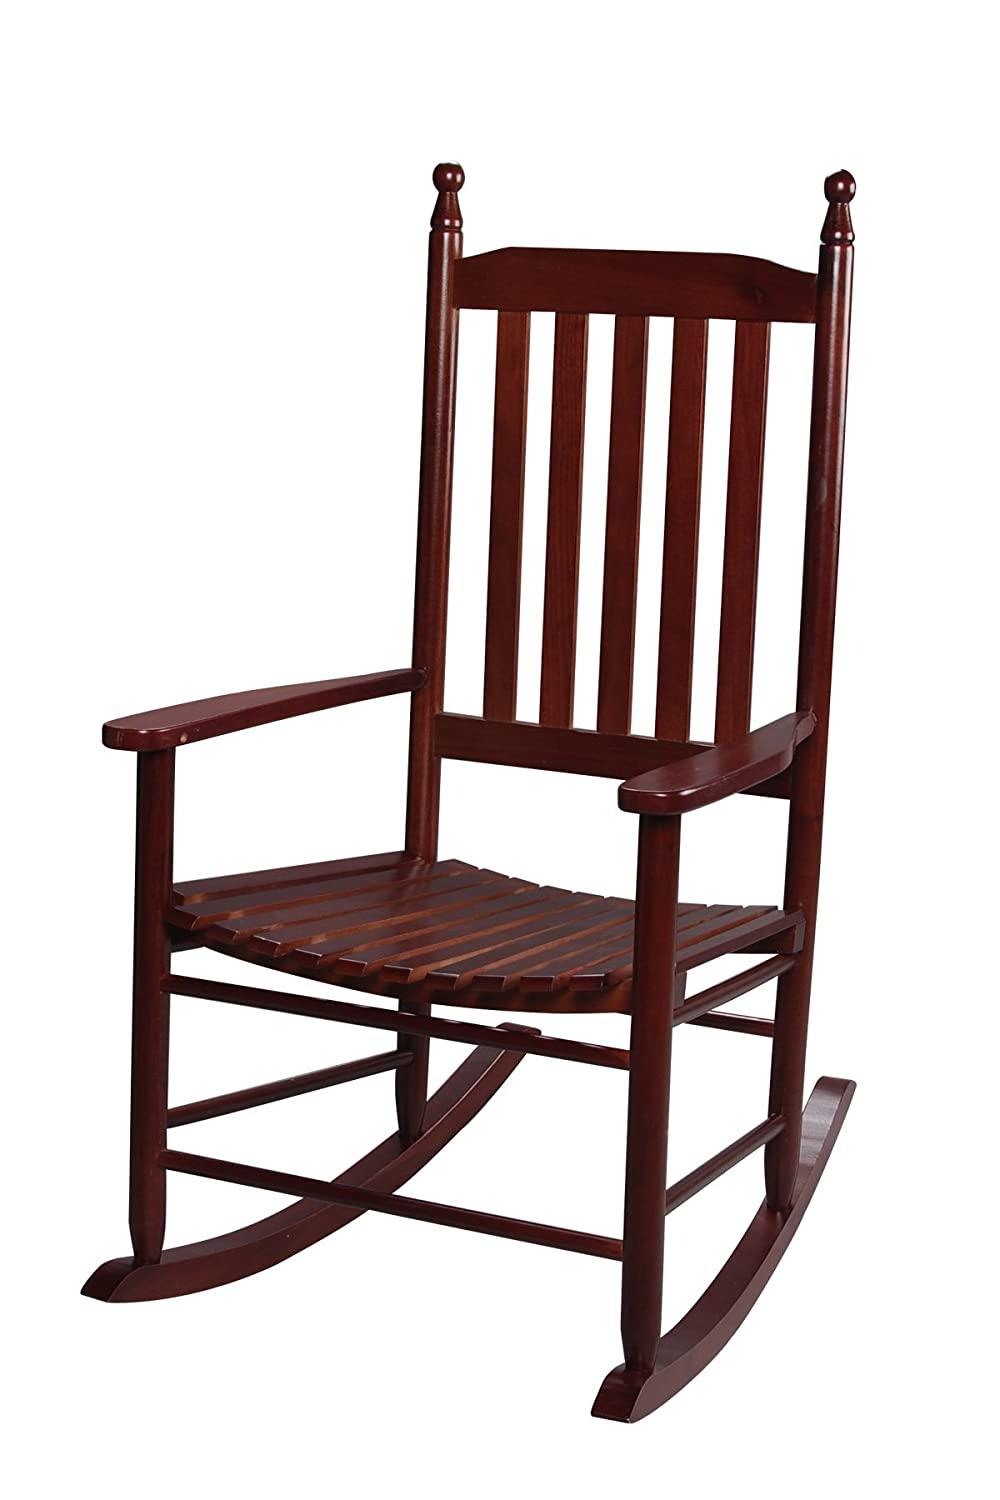 Awesome image of outdoor wood rocking chair shop furniture online best patio glider for any - Rocking chair but ...